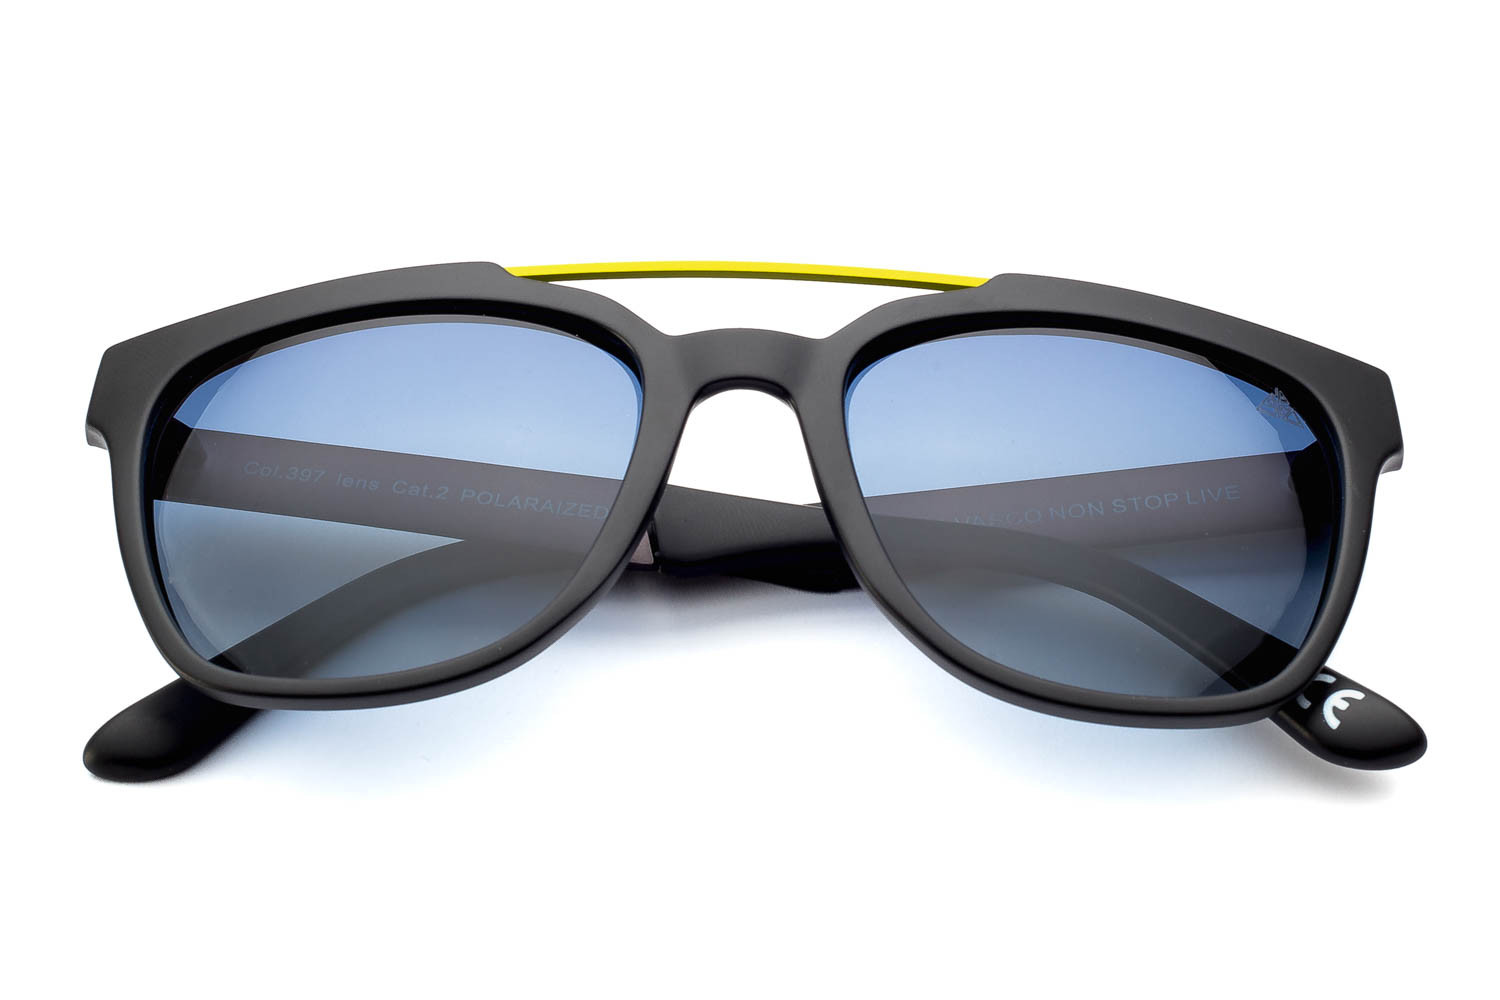 matt black - yellow lacquered bridge - gray / blue polarized lens